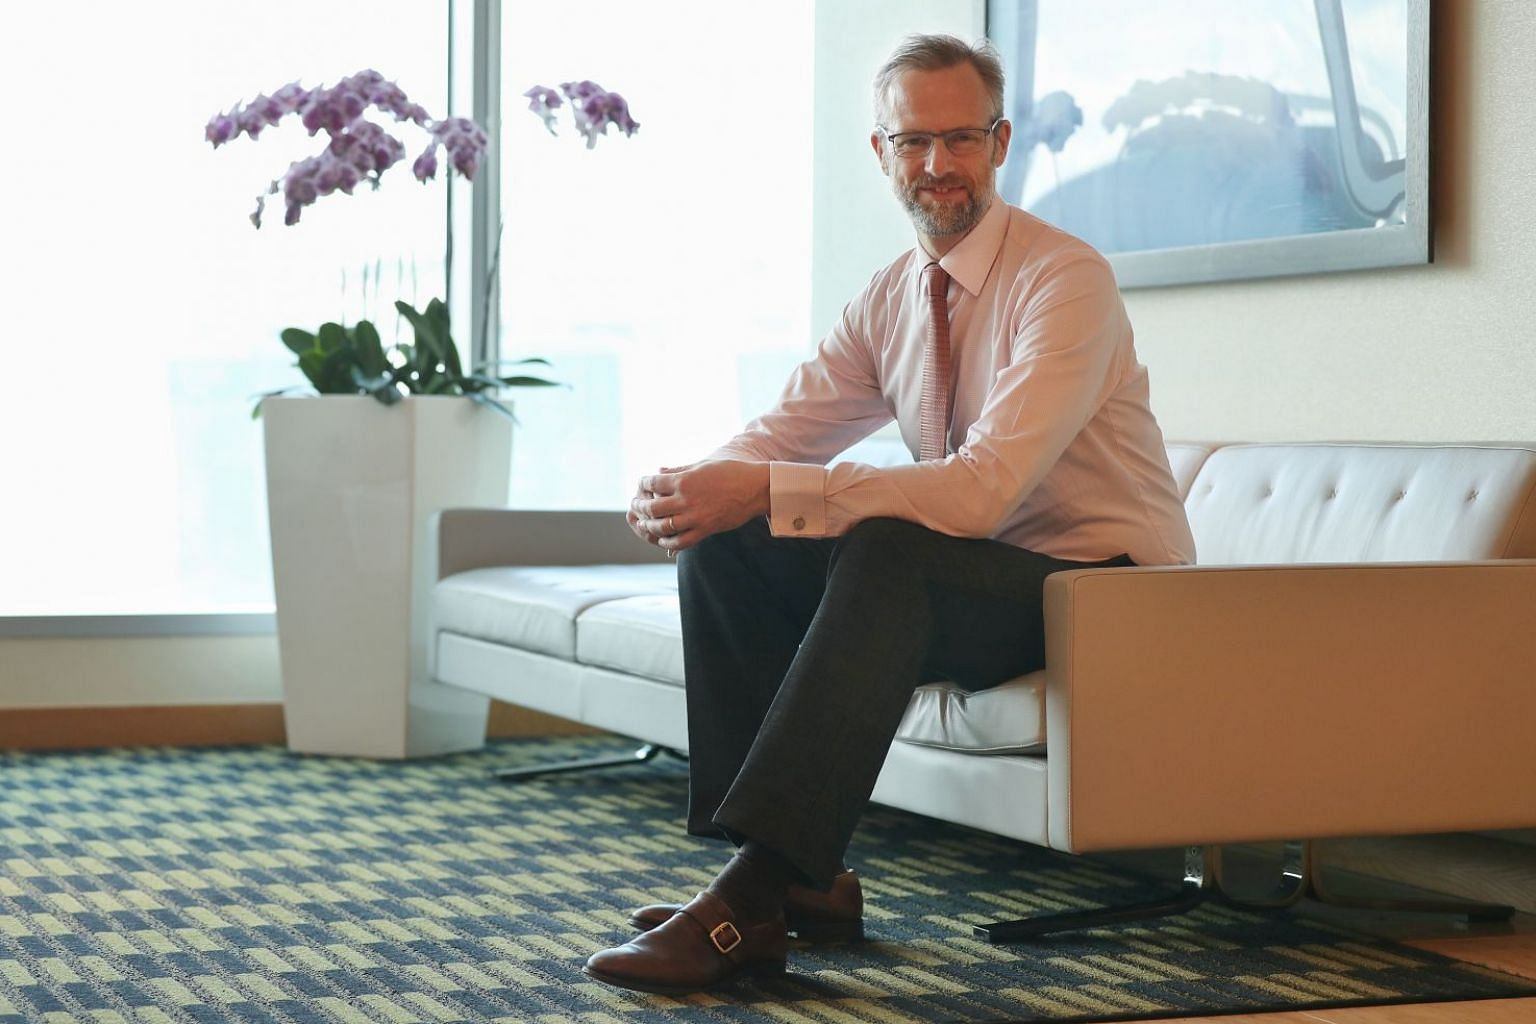 Mr Andy Budden, investment director at Capital Group, says a balanced and broadly diversified portfolio is the best way to pursue resilient investment results. He adds that declines are a normal part of markets, and sticking to one's investment plans is t